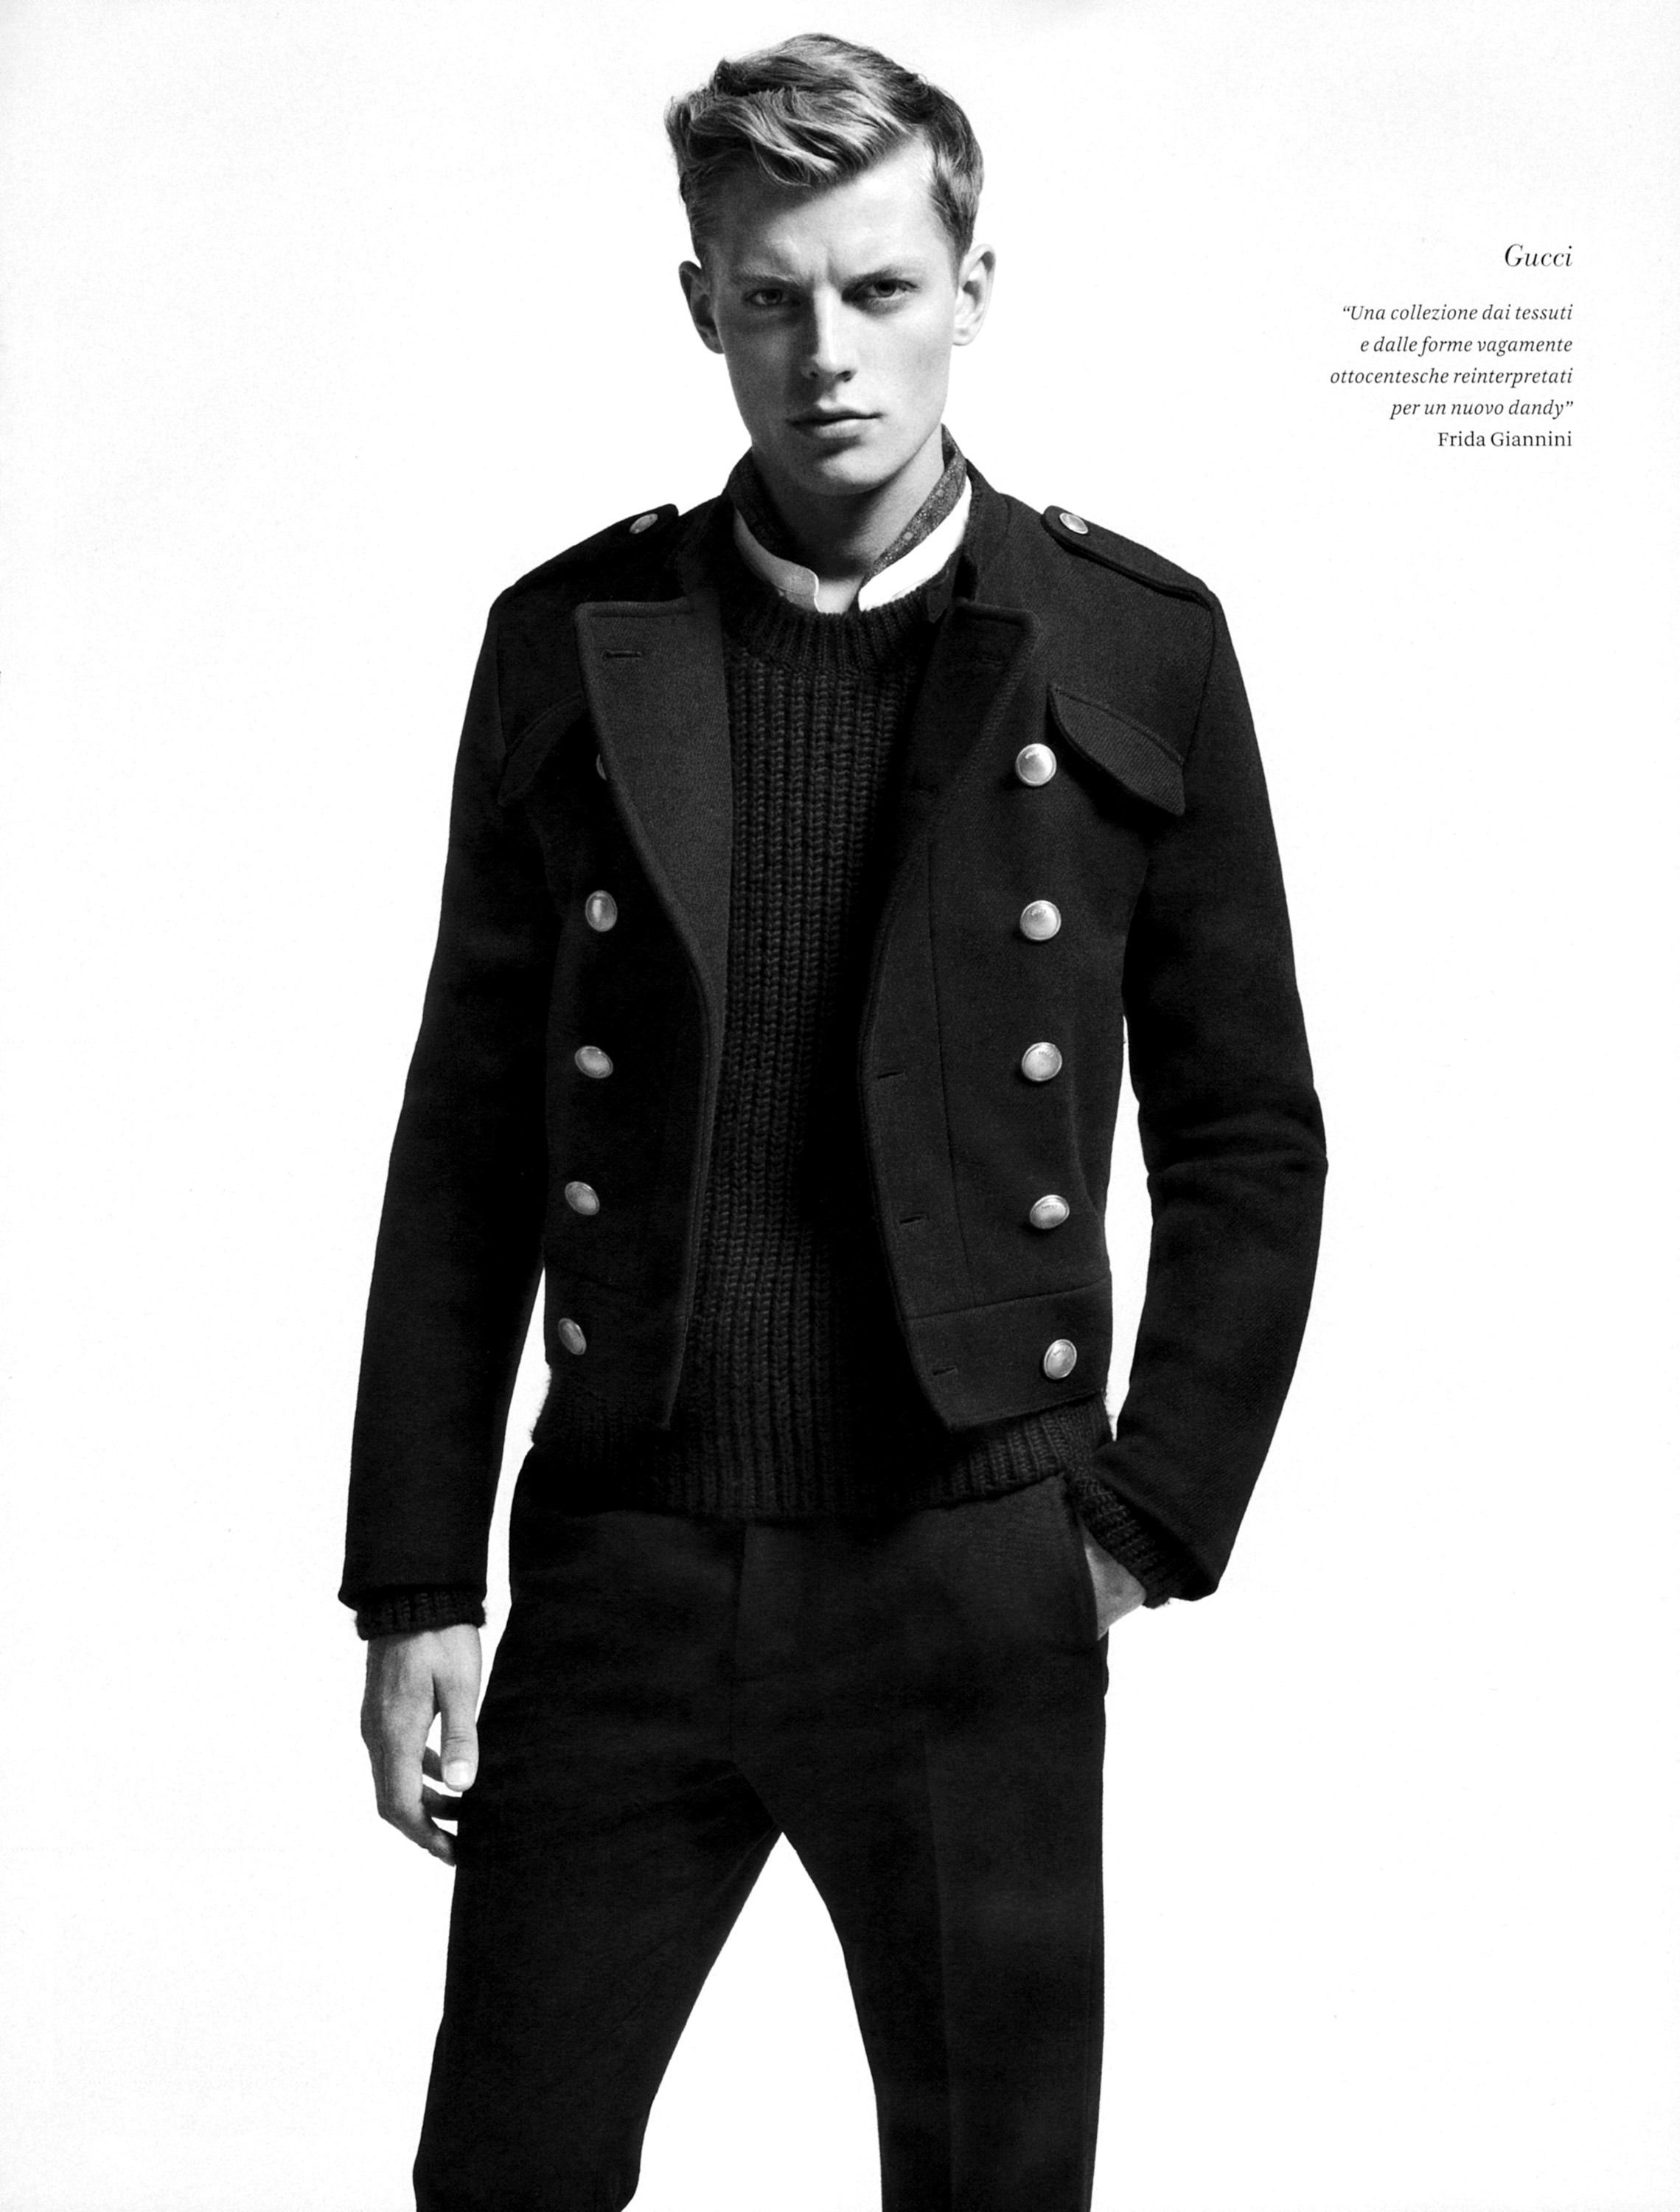 Bastian Thiery, Nicolas Ripoll, Jesse Shannon & Others Don Italian Styles for L'Officiel Hommes Italia